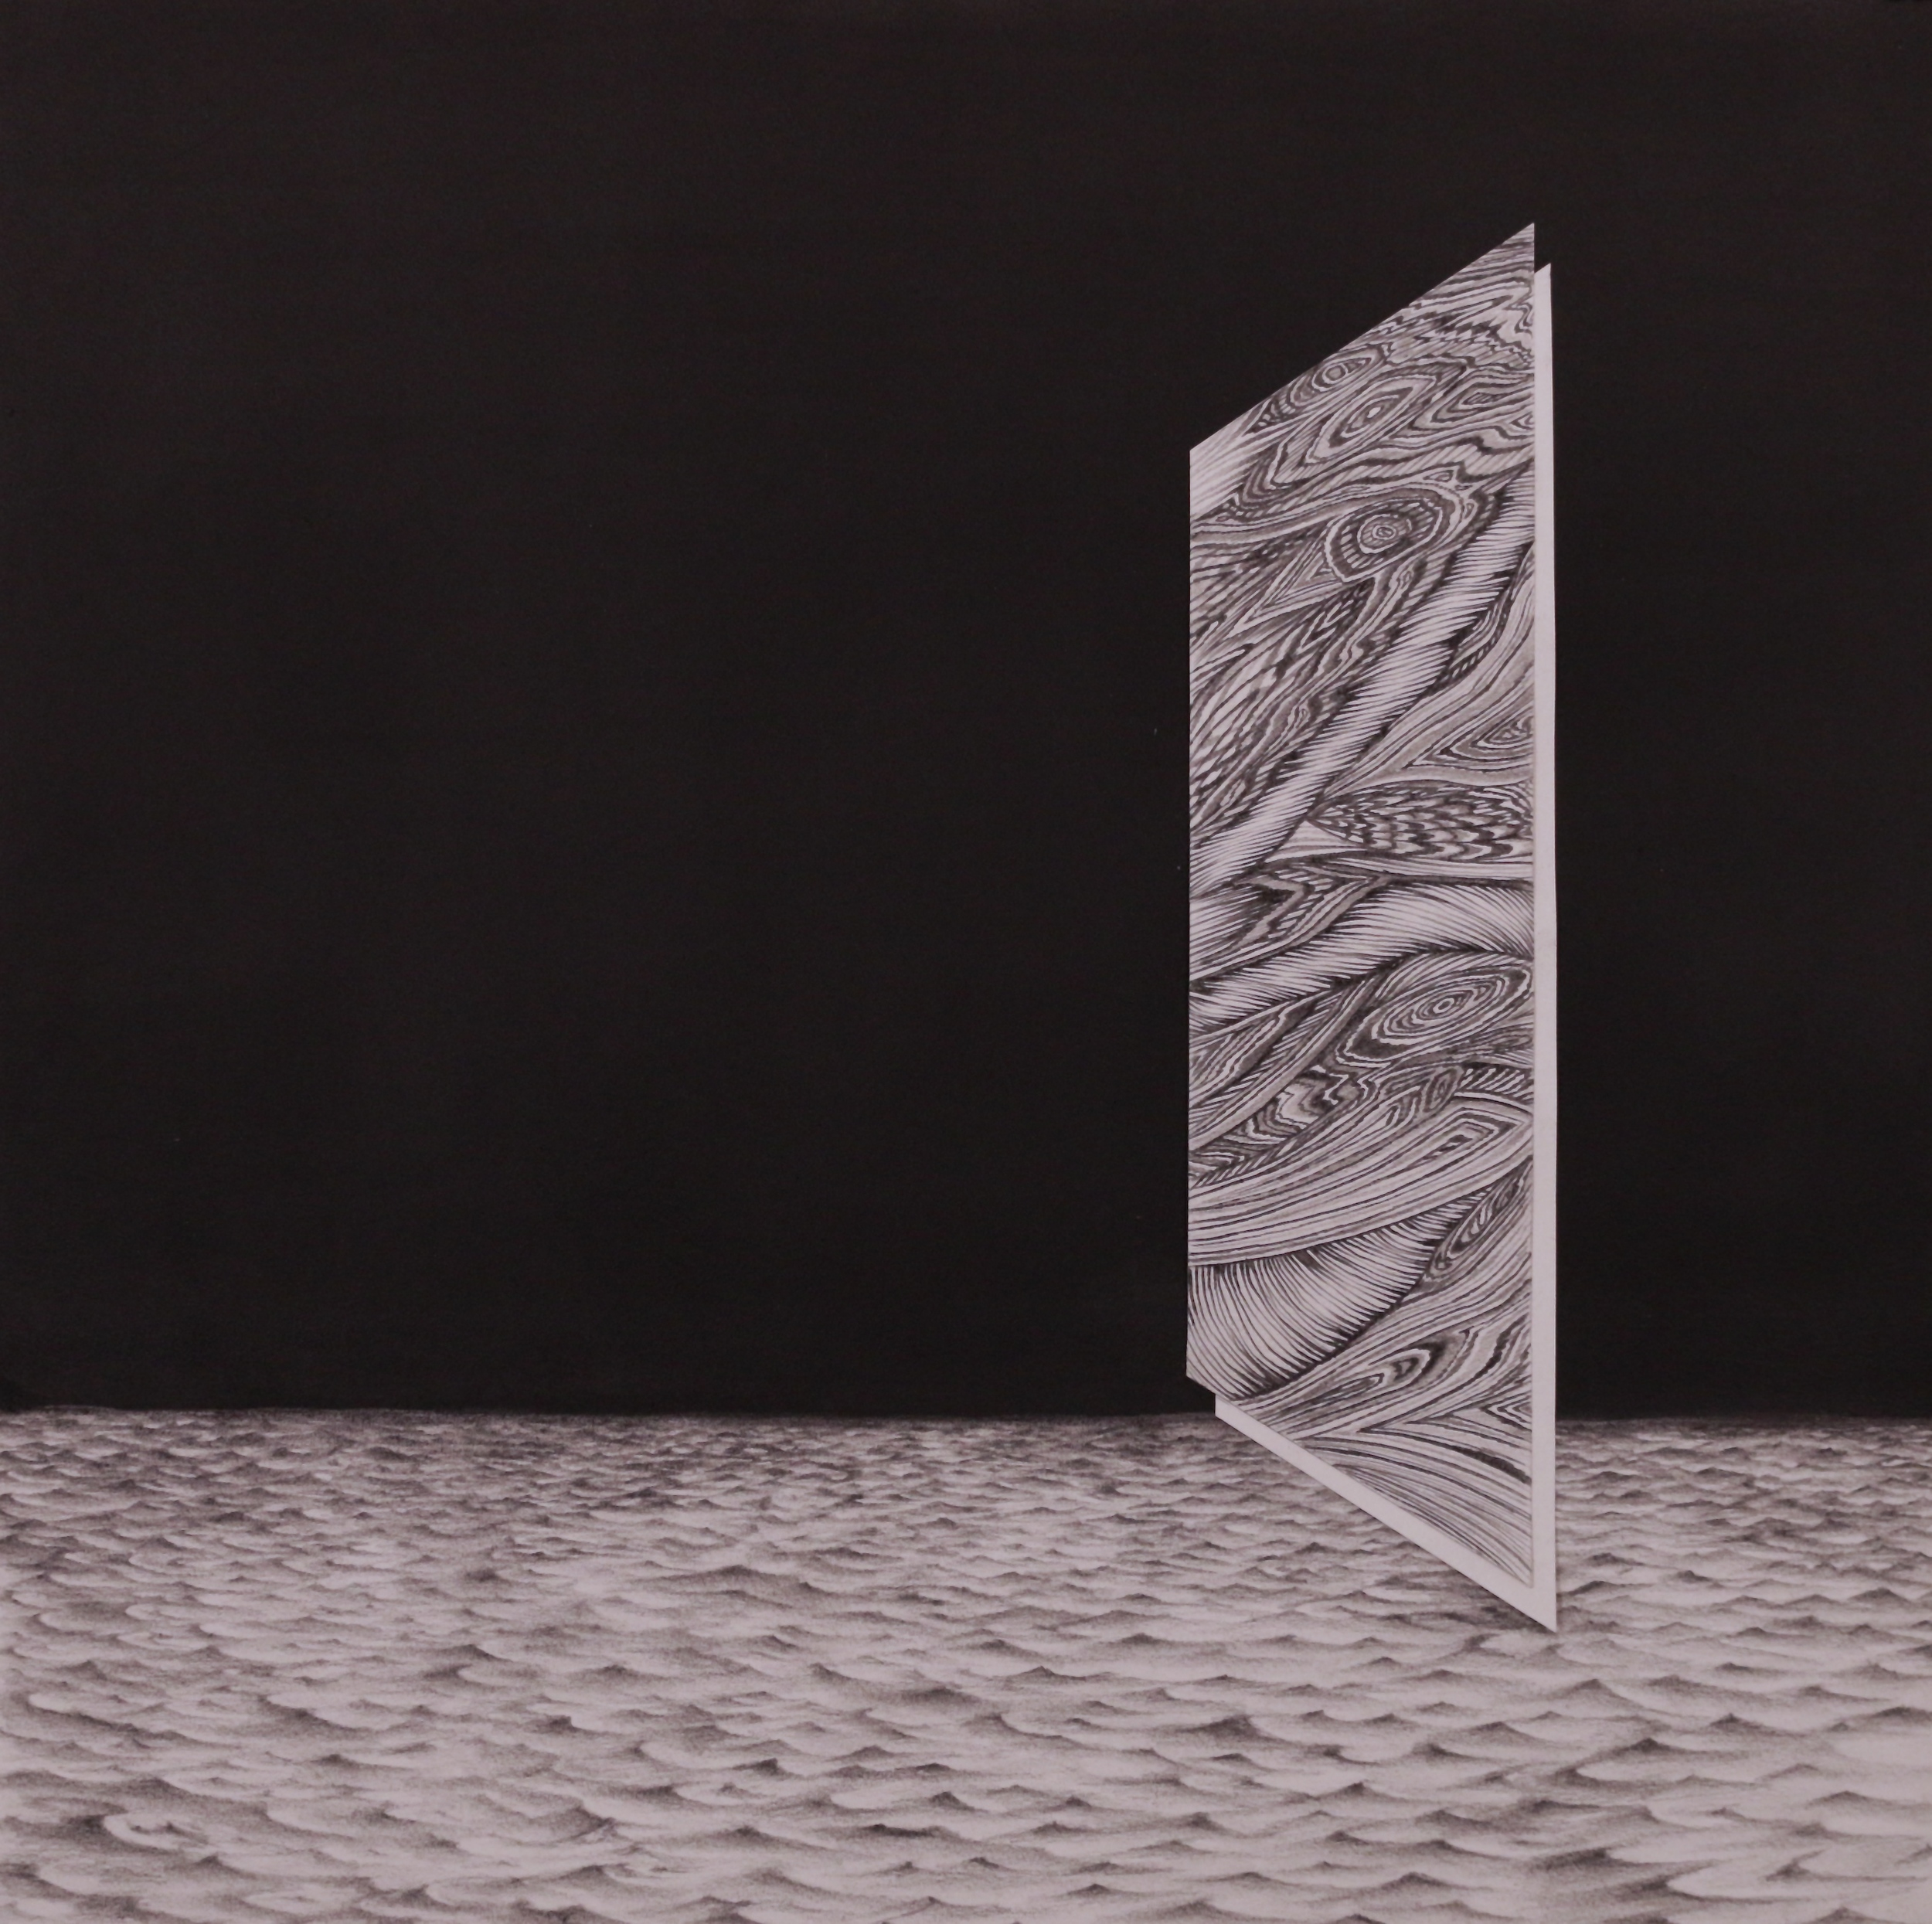 Untitled (Landscape with Monolith), 19''x19'', Graphite and Cut Paper Collage, 2014